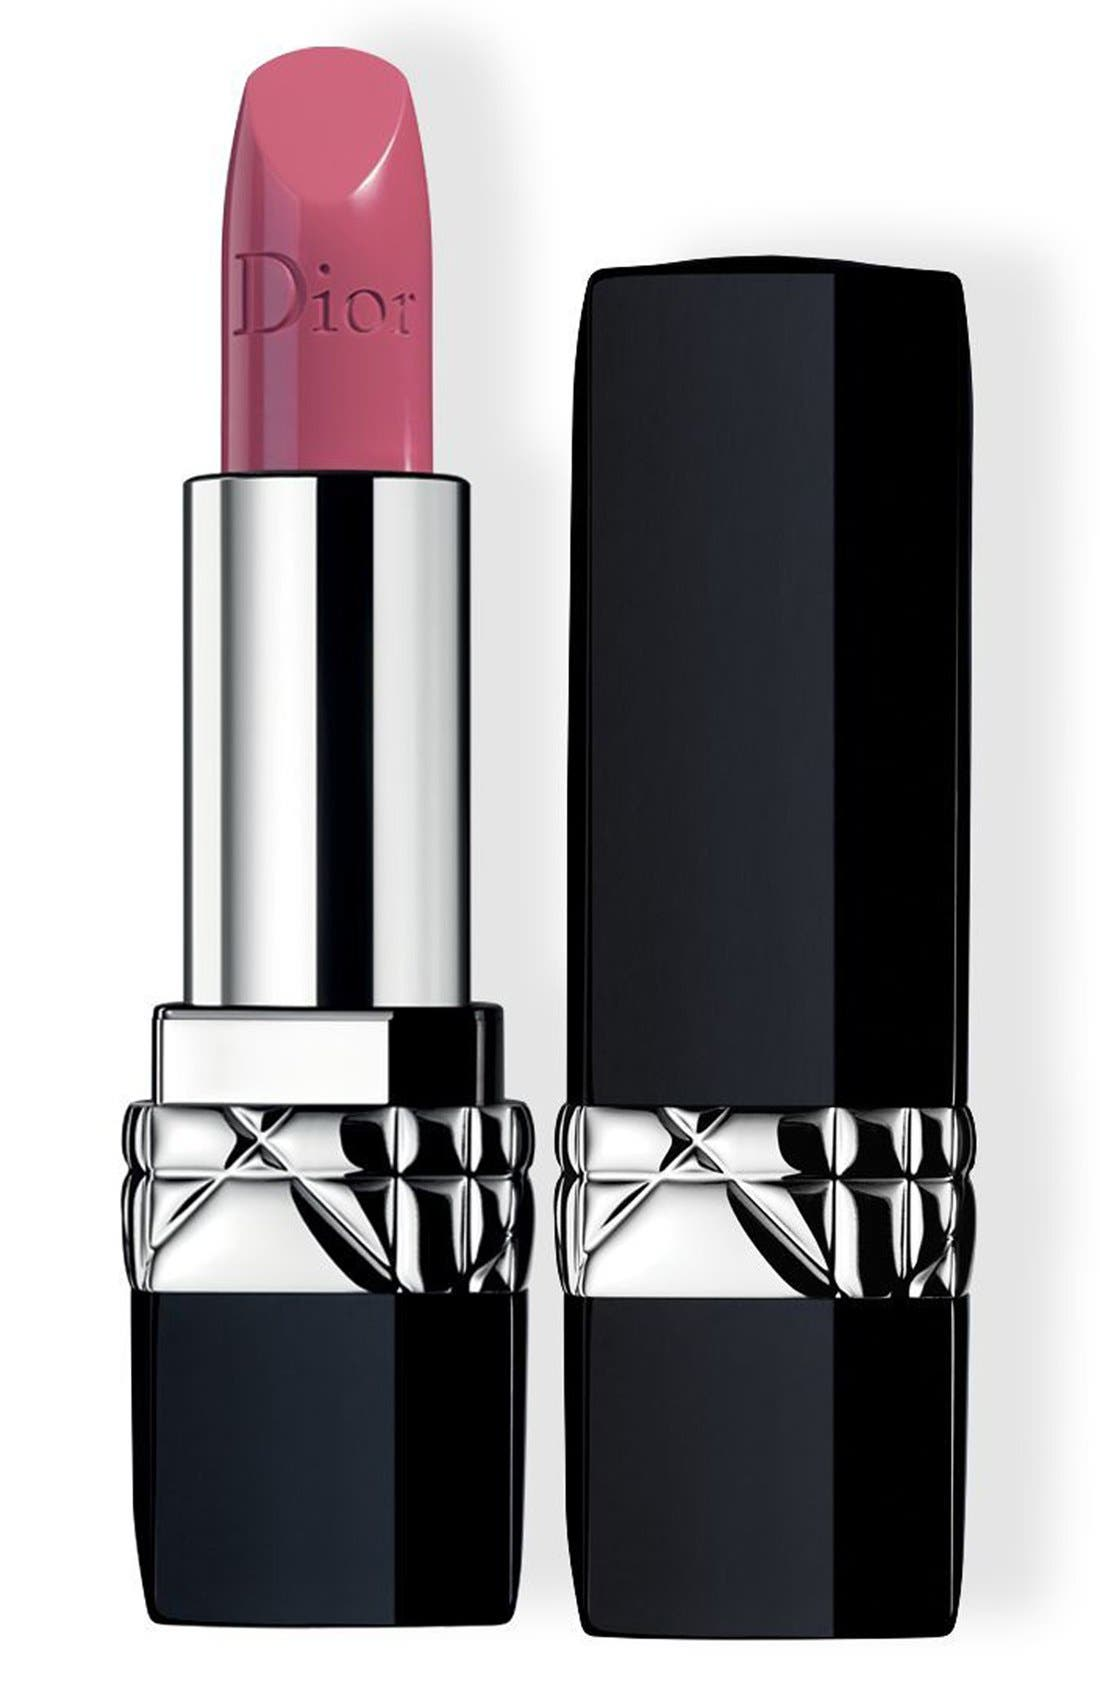 Dior Couture Color Rouge Dior Lipstick - 361 Rose Baiser